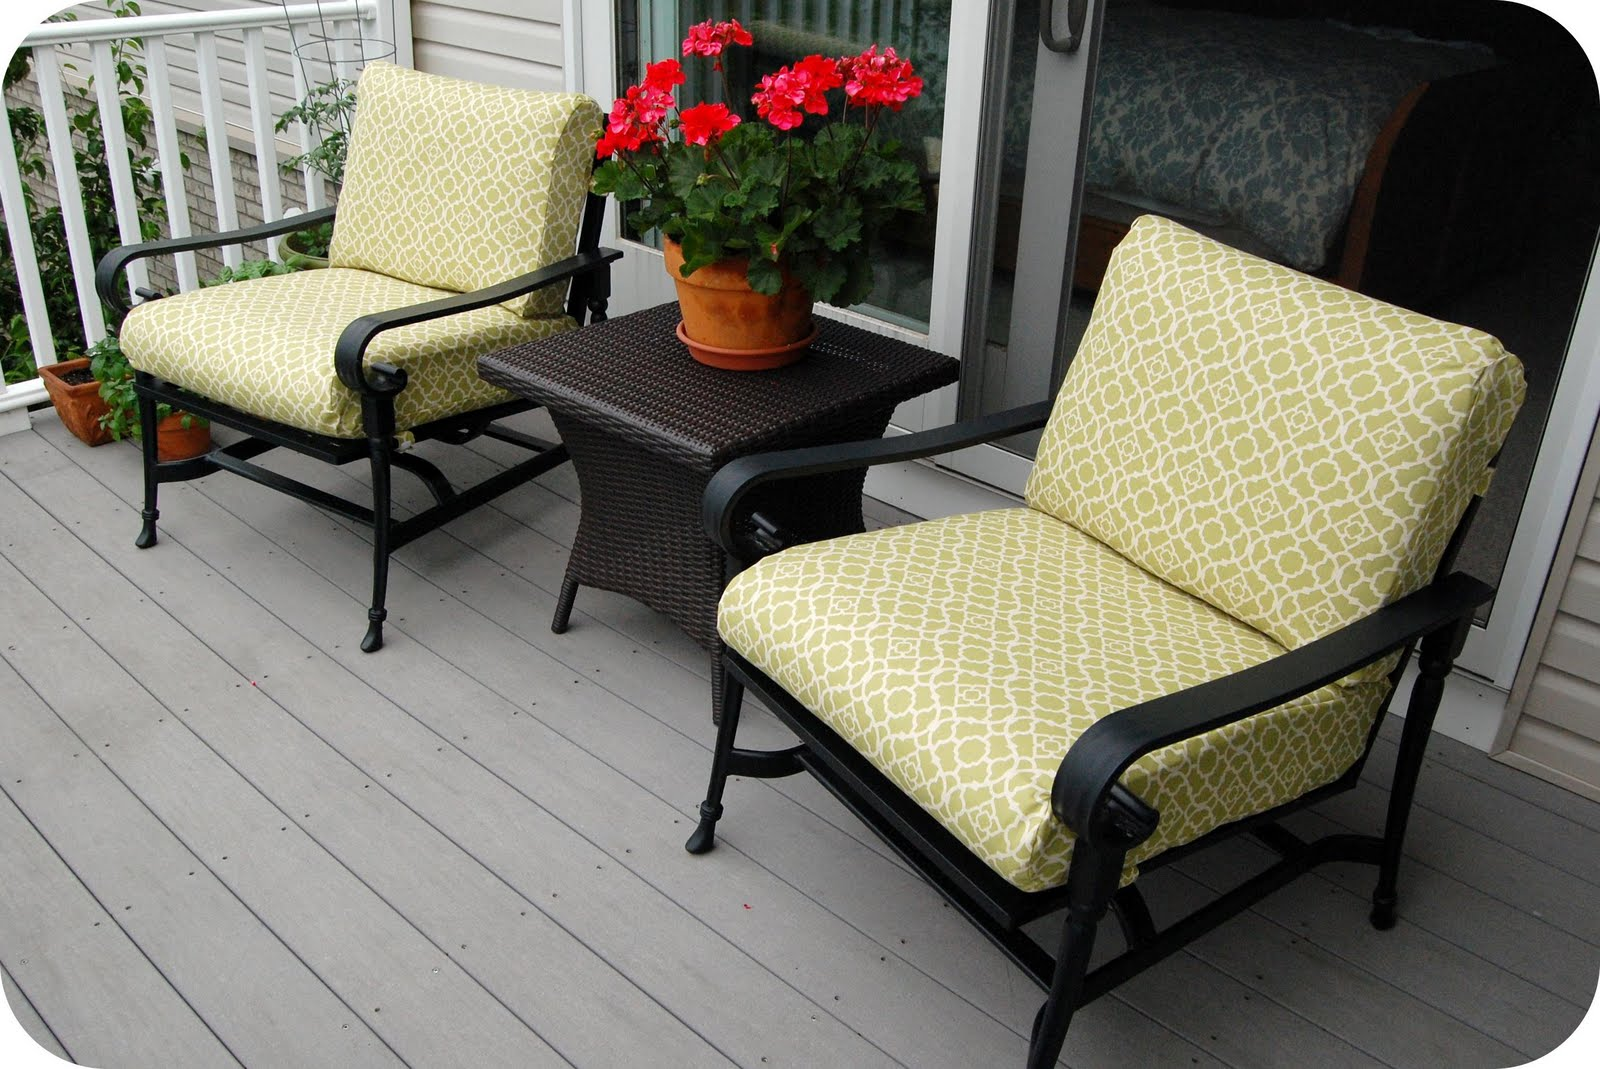 sewing patterns for patio chair cushions desk with wheels remodelaholic that 39s cushy updated cushion